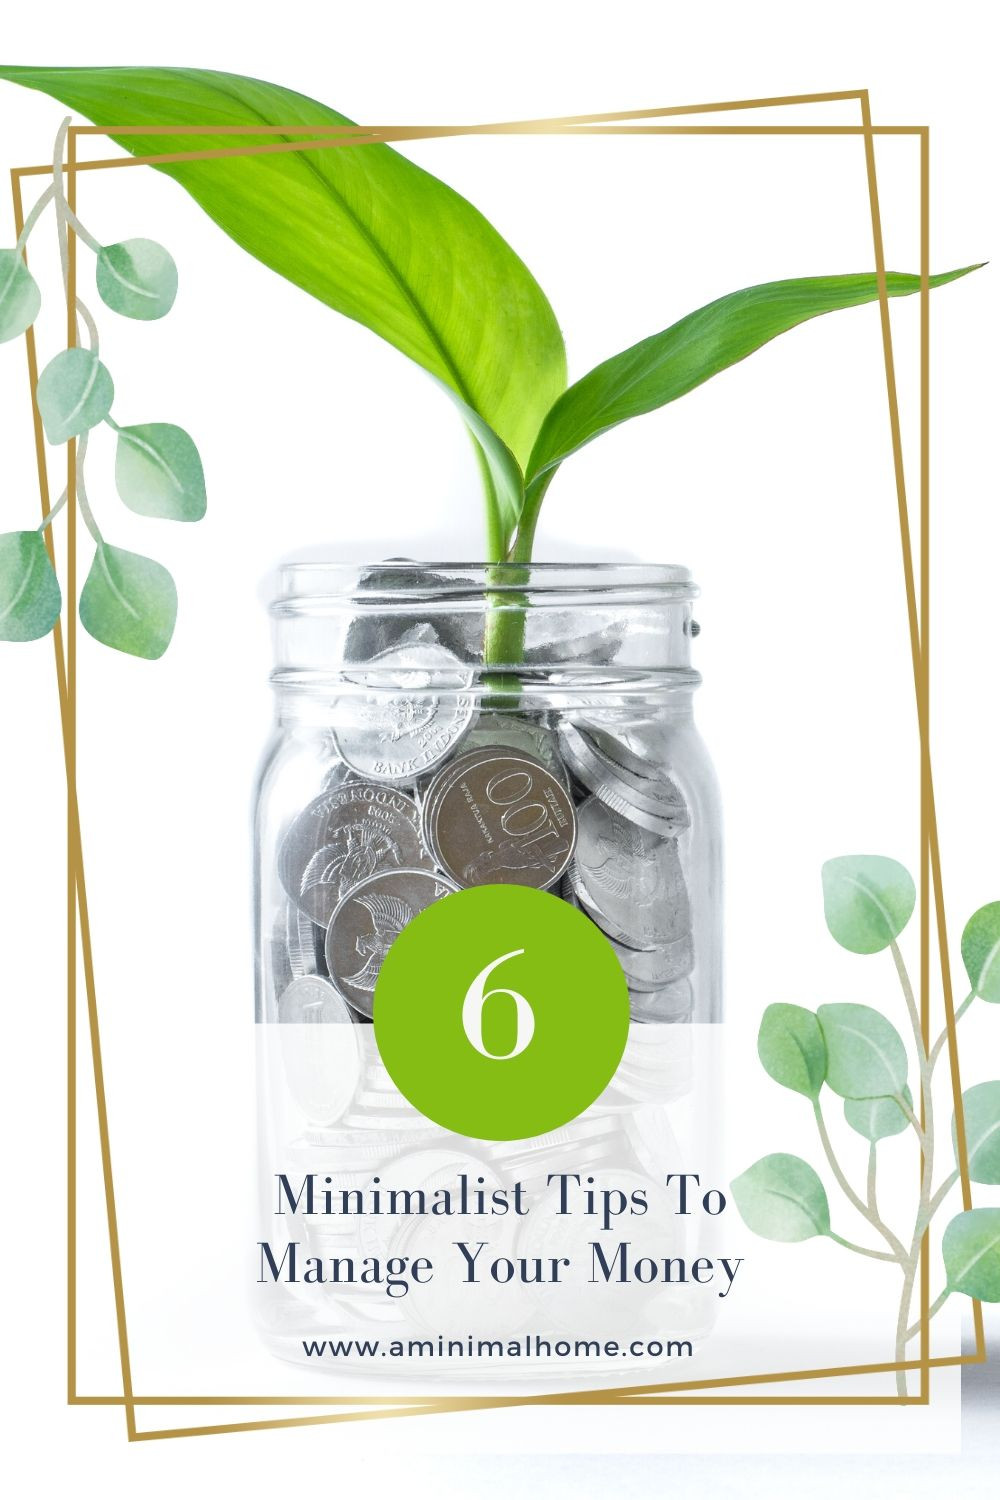 6 minimalists tips to manage your money